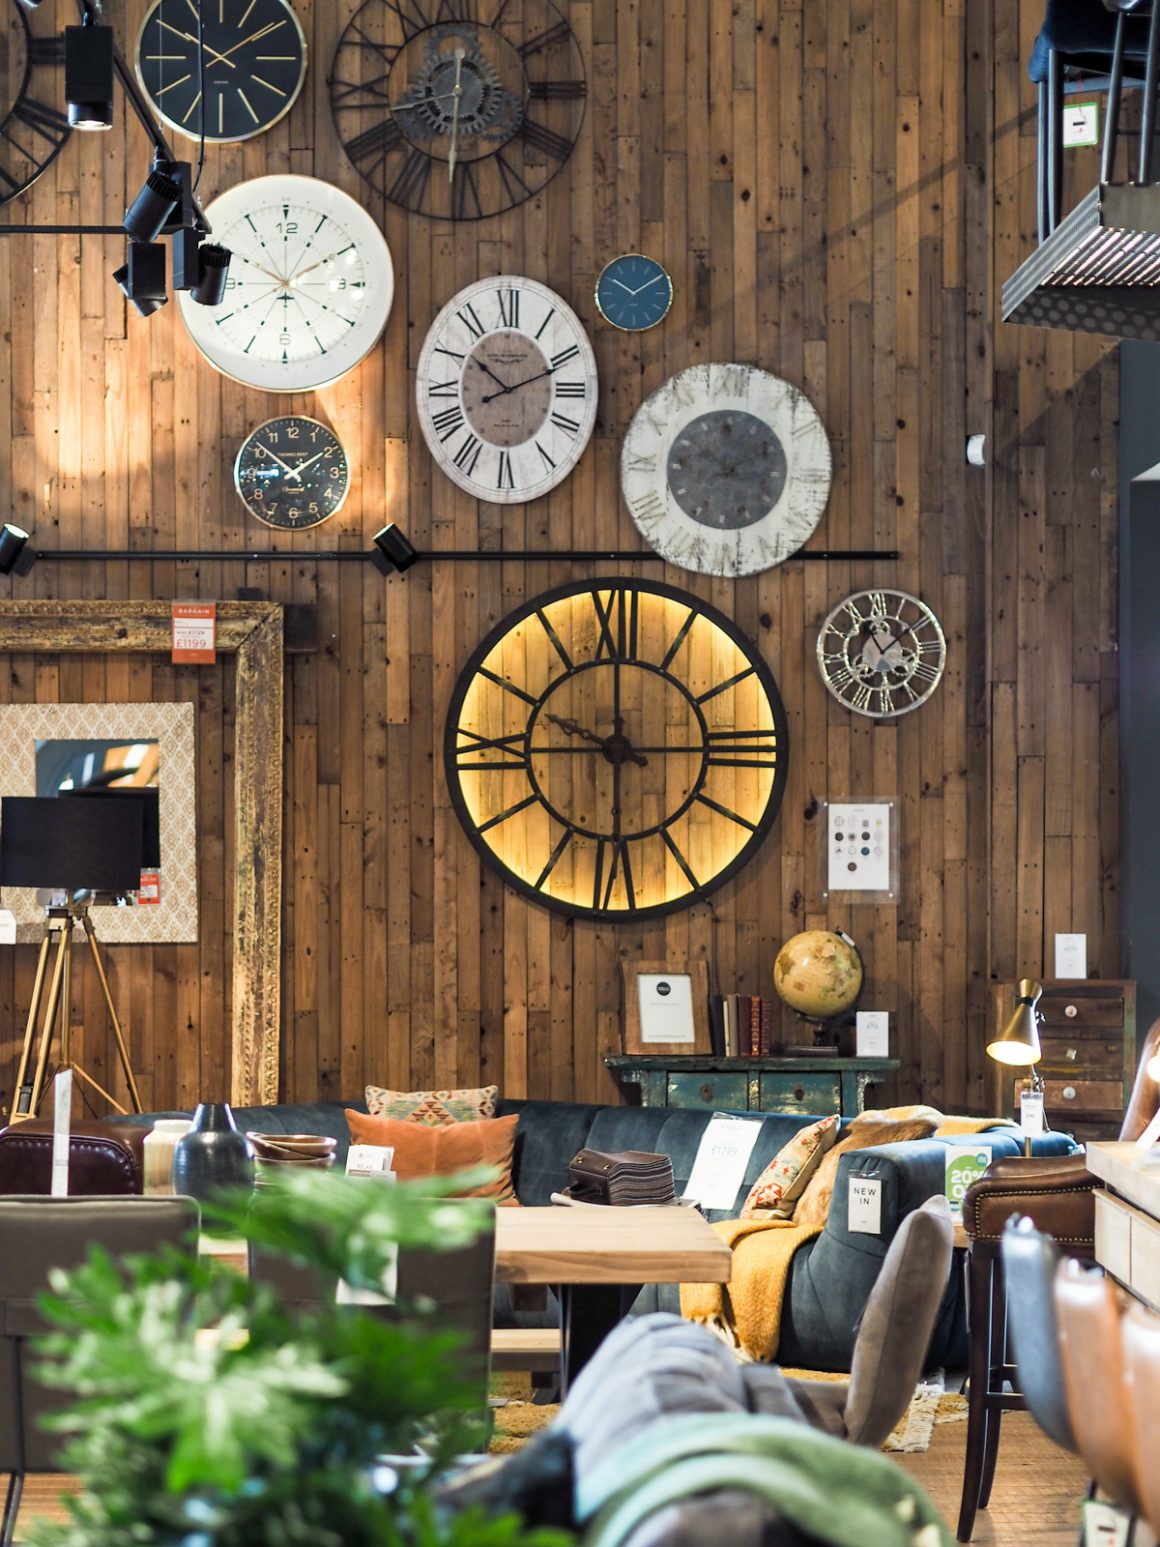 Gallery wall with clocks